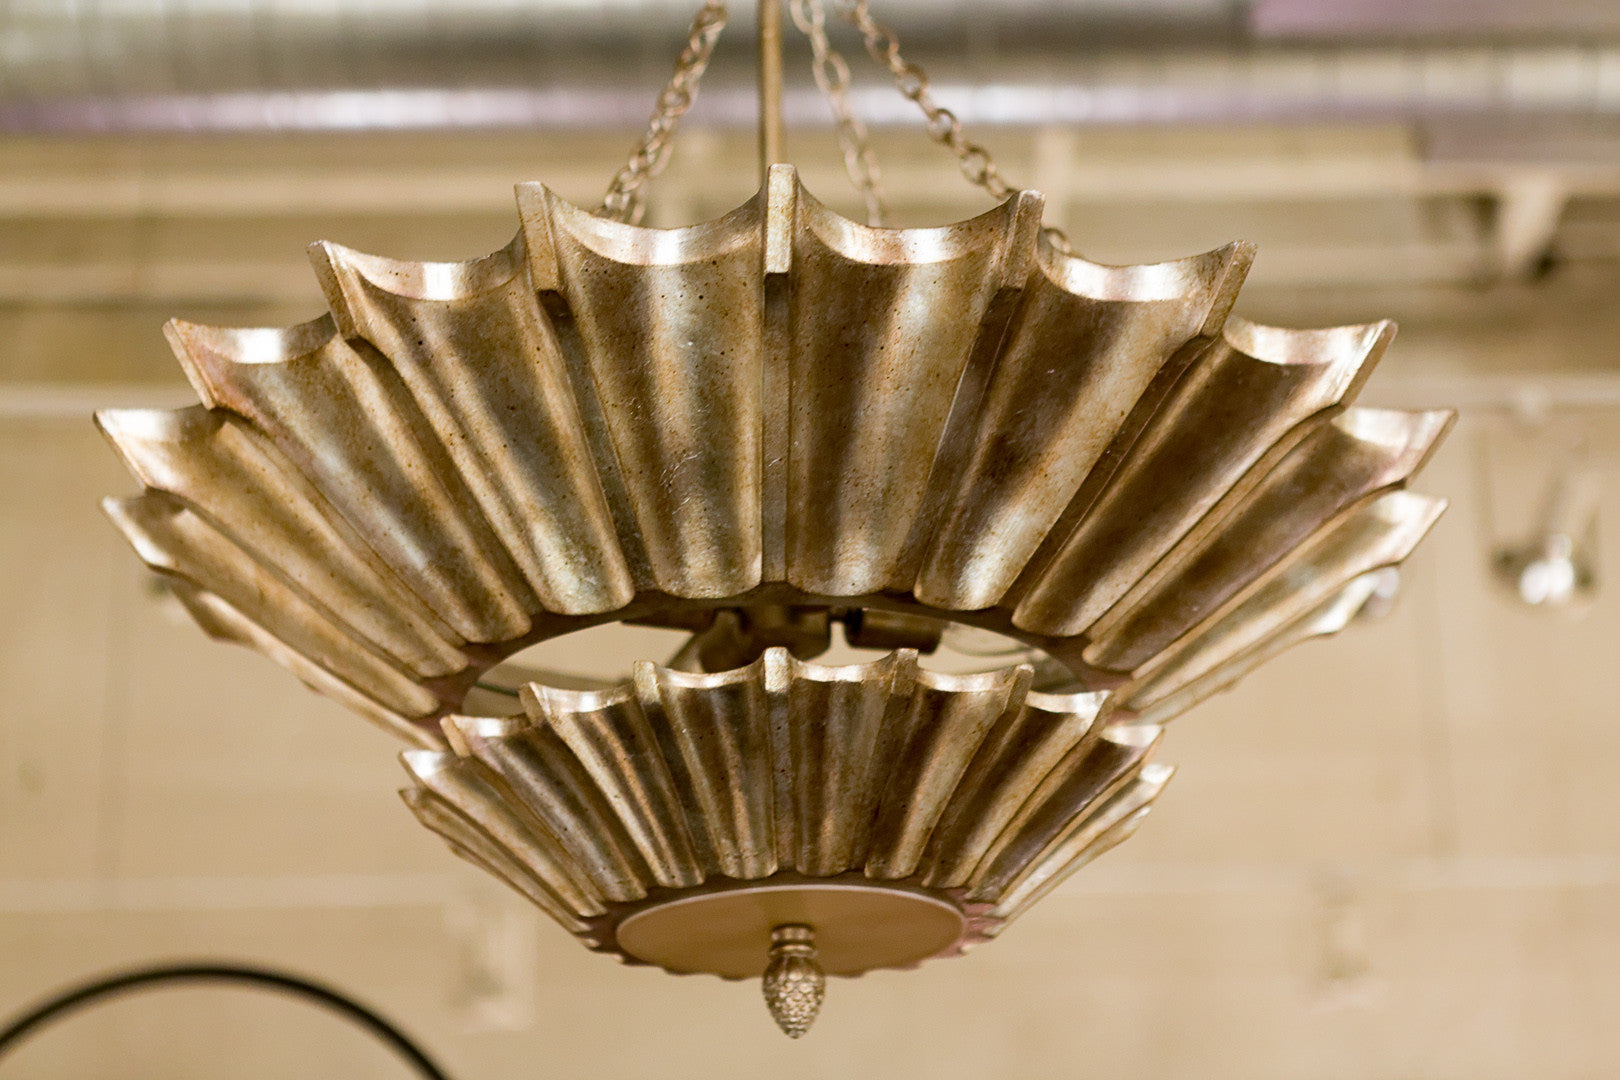 Sarea two tier chandelier made goods luxe home philadelphia sarea two tier chandelier made goods arubaitofo Image collections